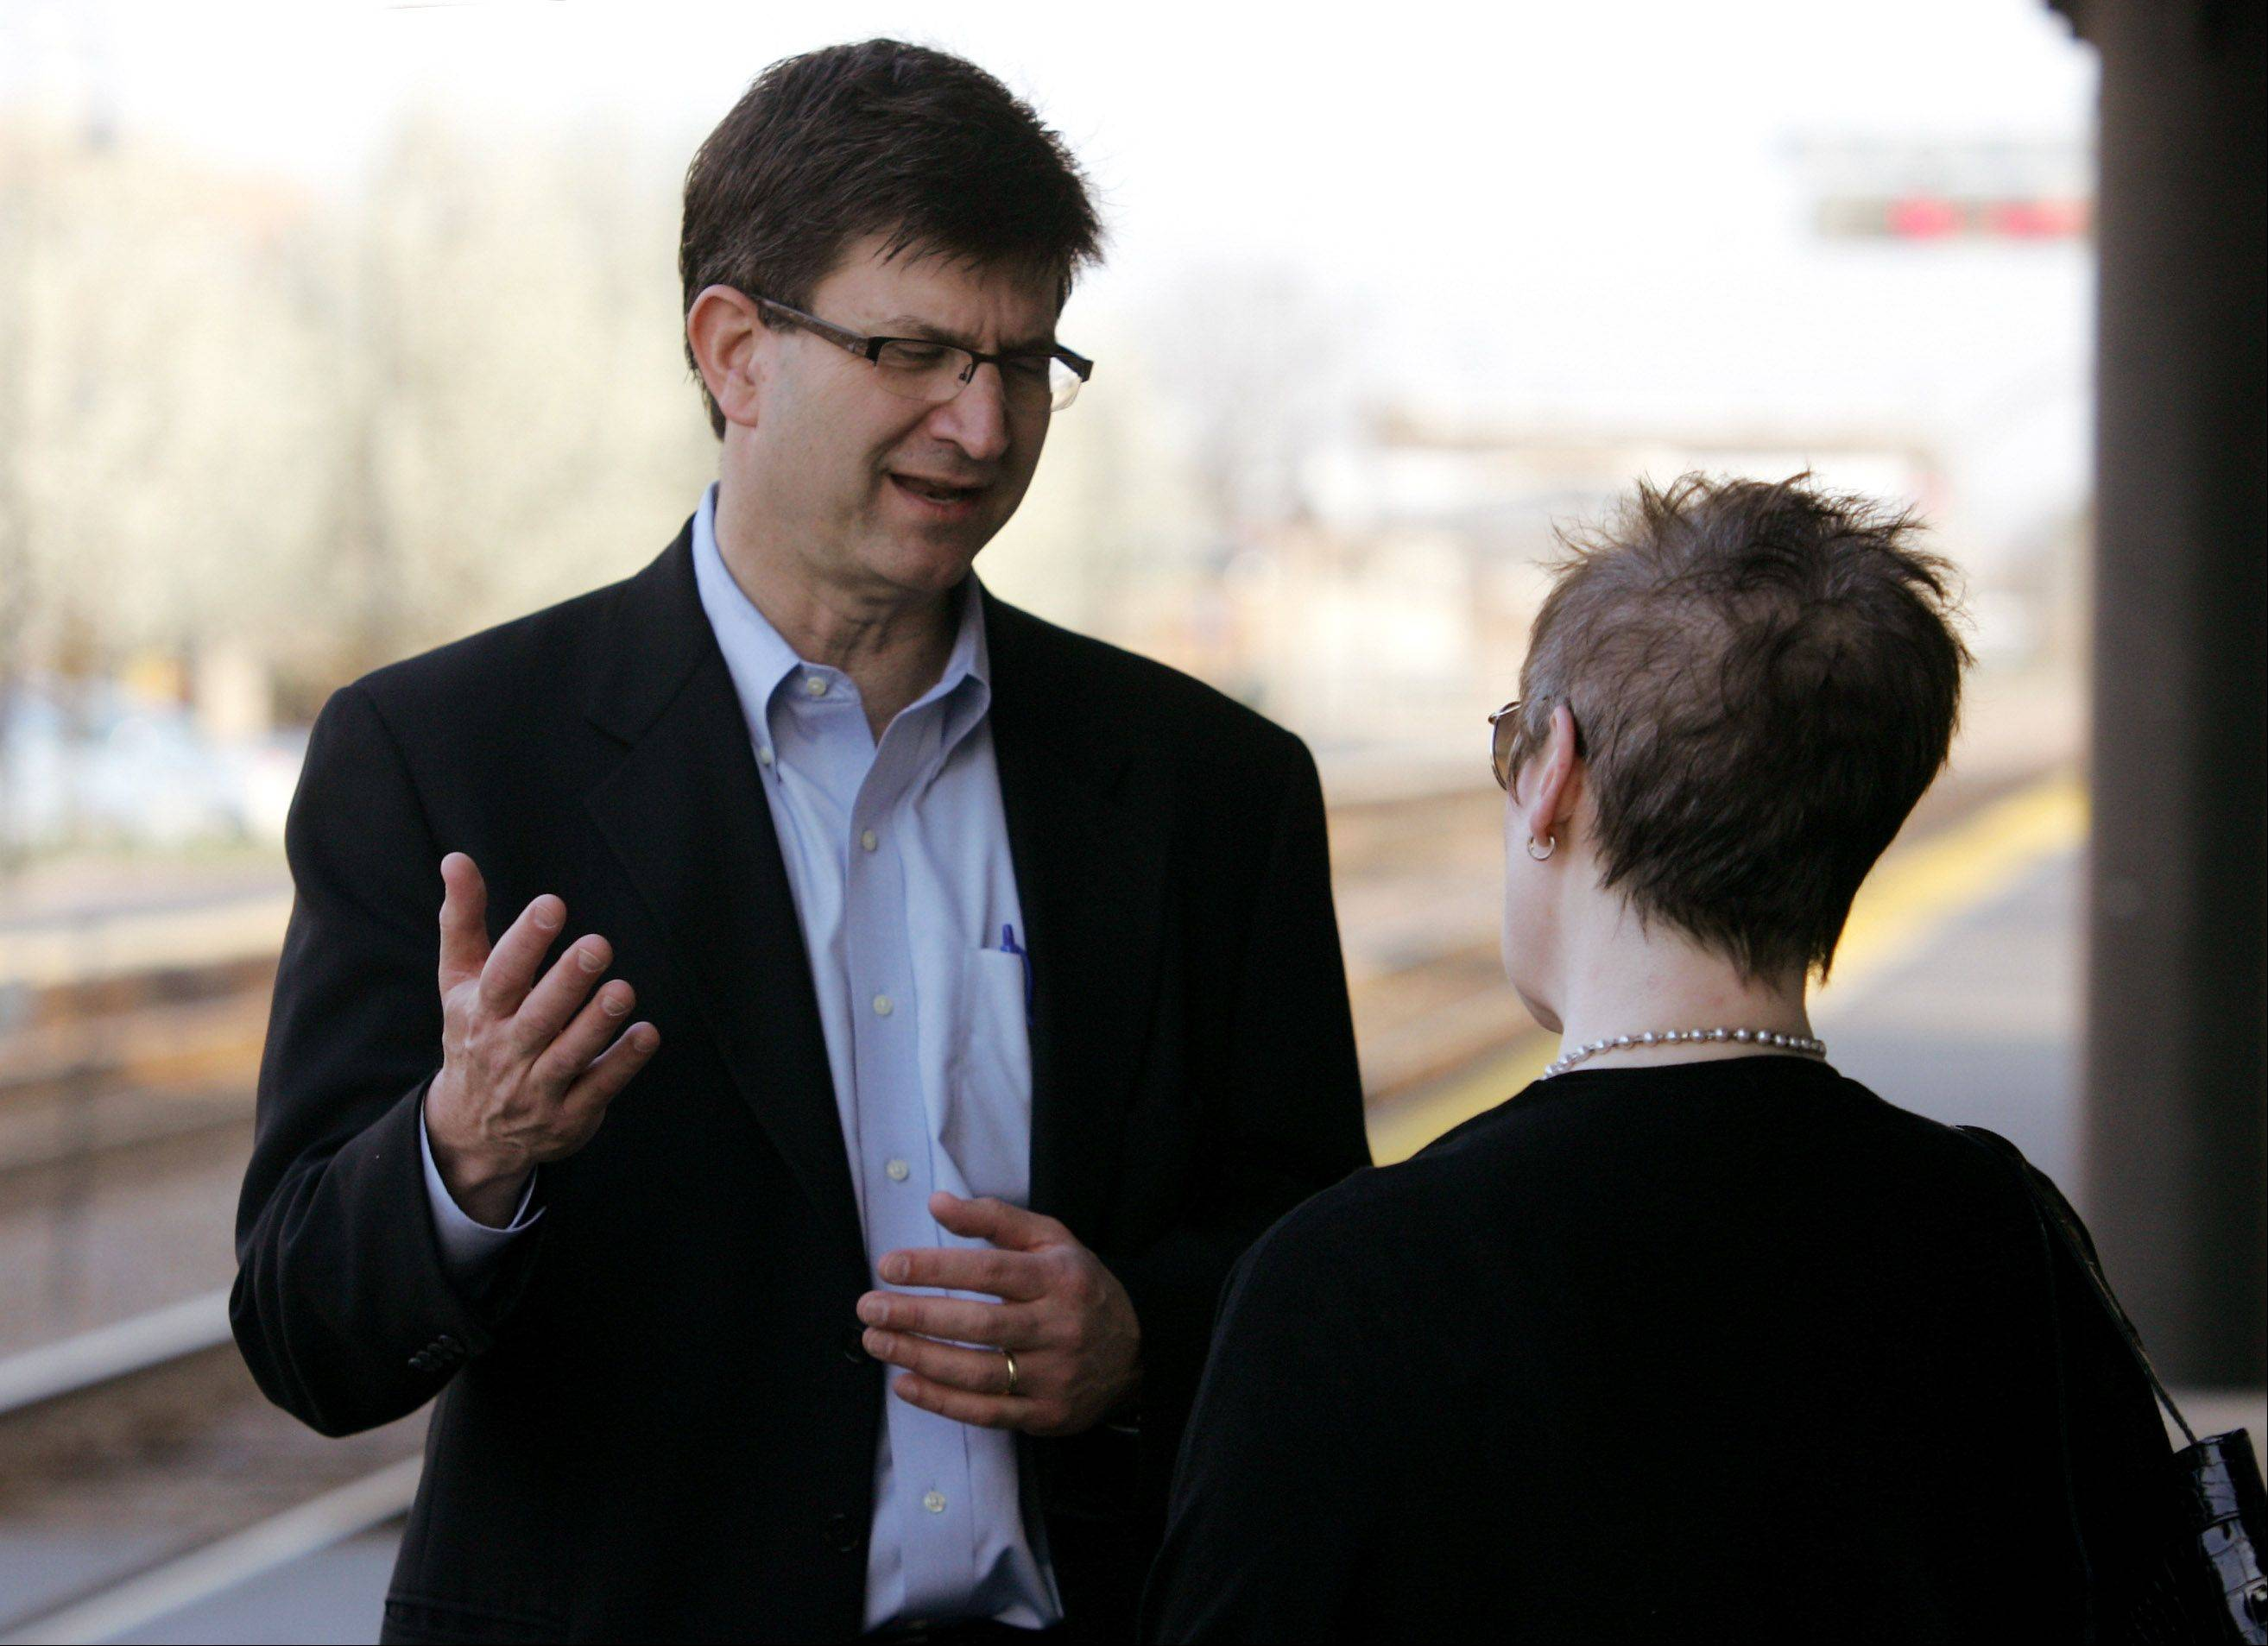 Tenth Congressional District candidate Brad Schneider talks to Highland Park resident Leslie Cole on Wednesday morning at that city's train station.